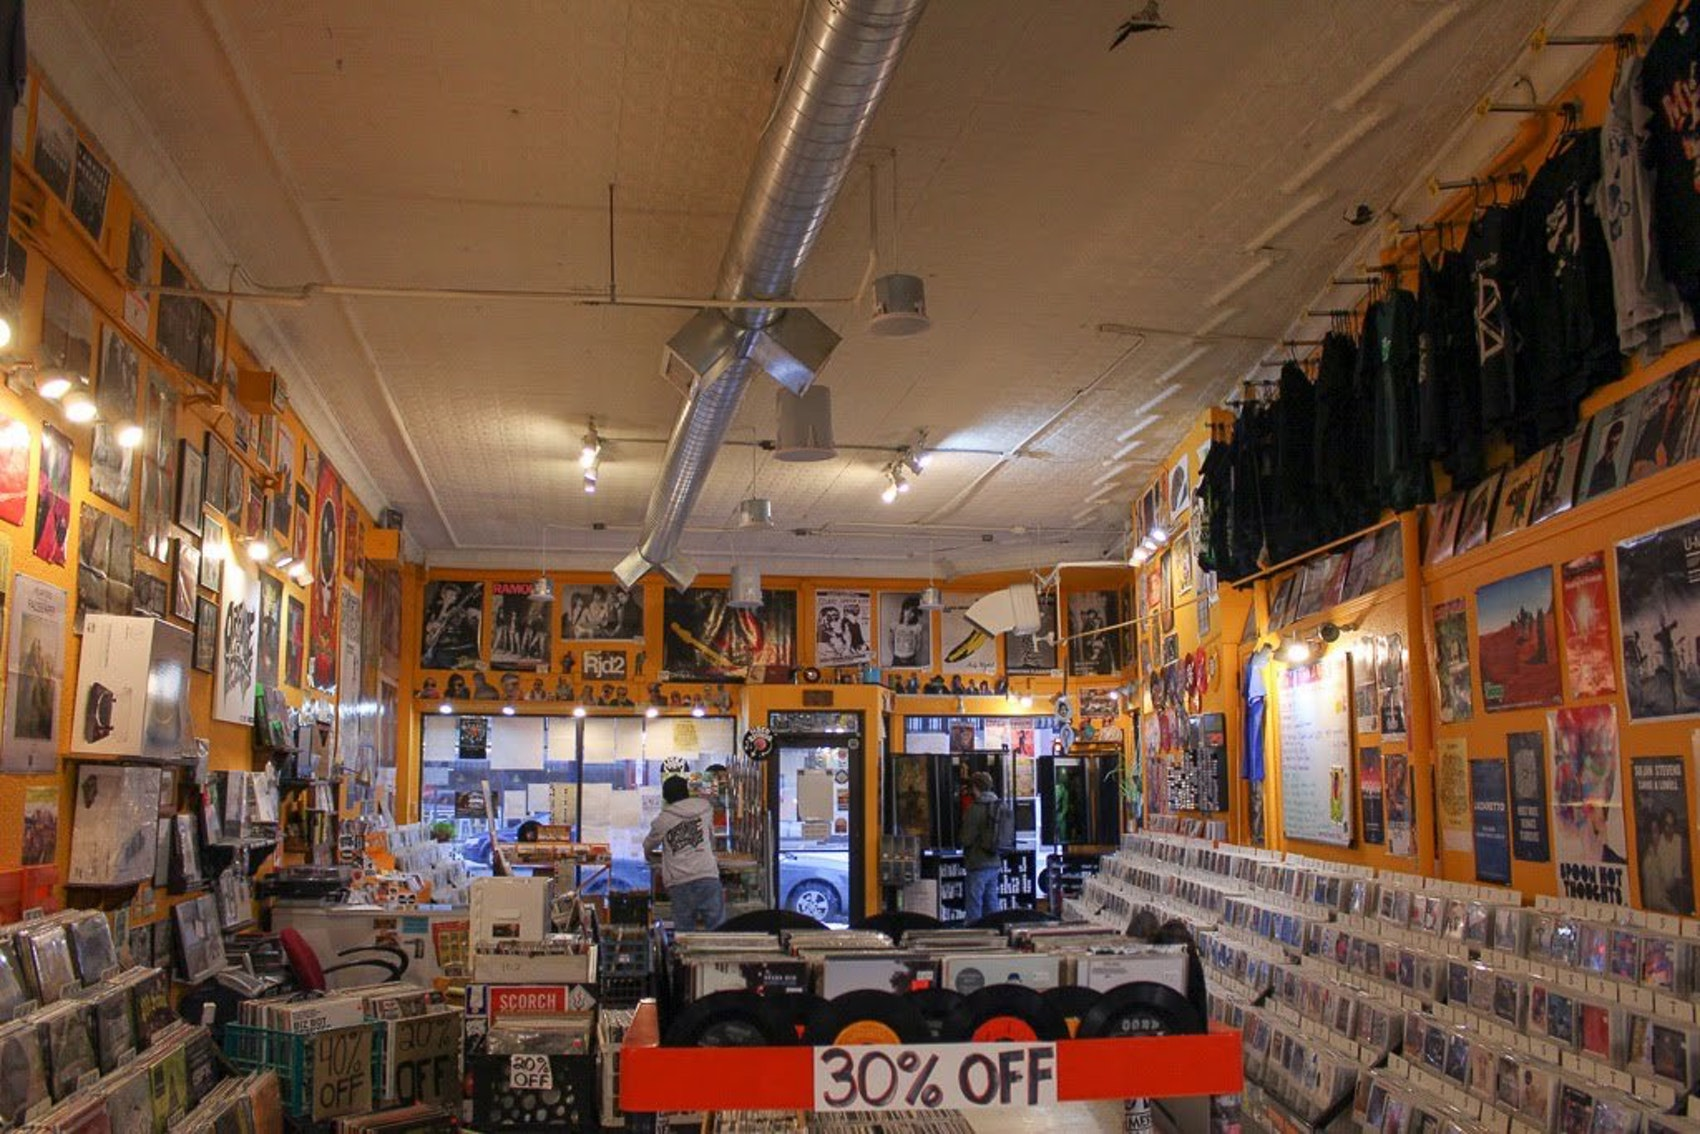 The inside of Orange Records